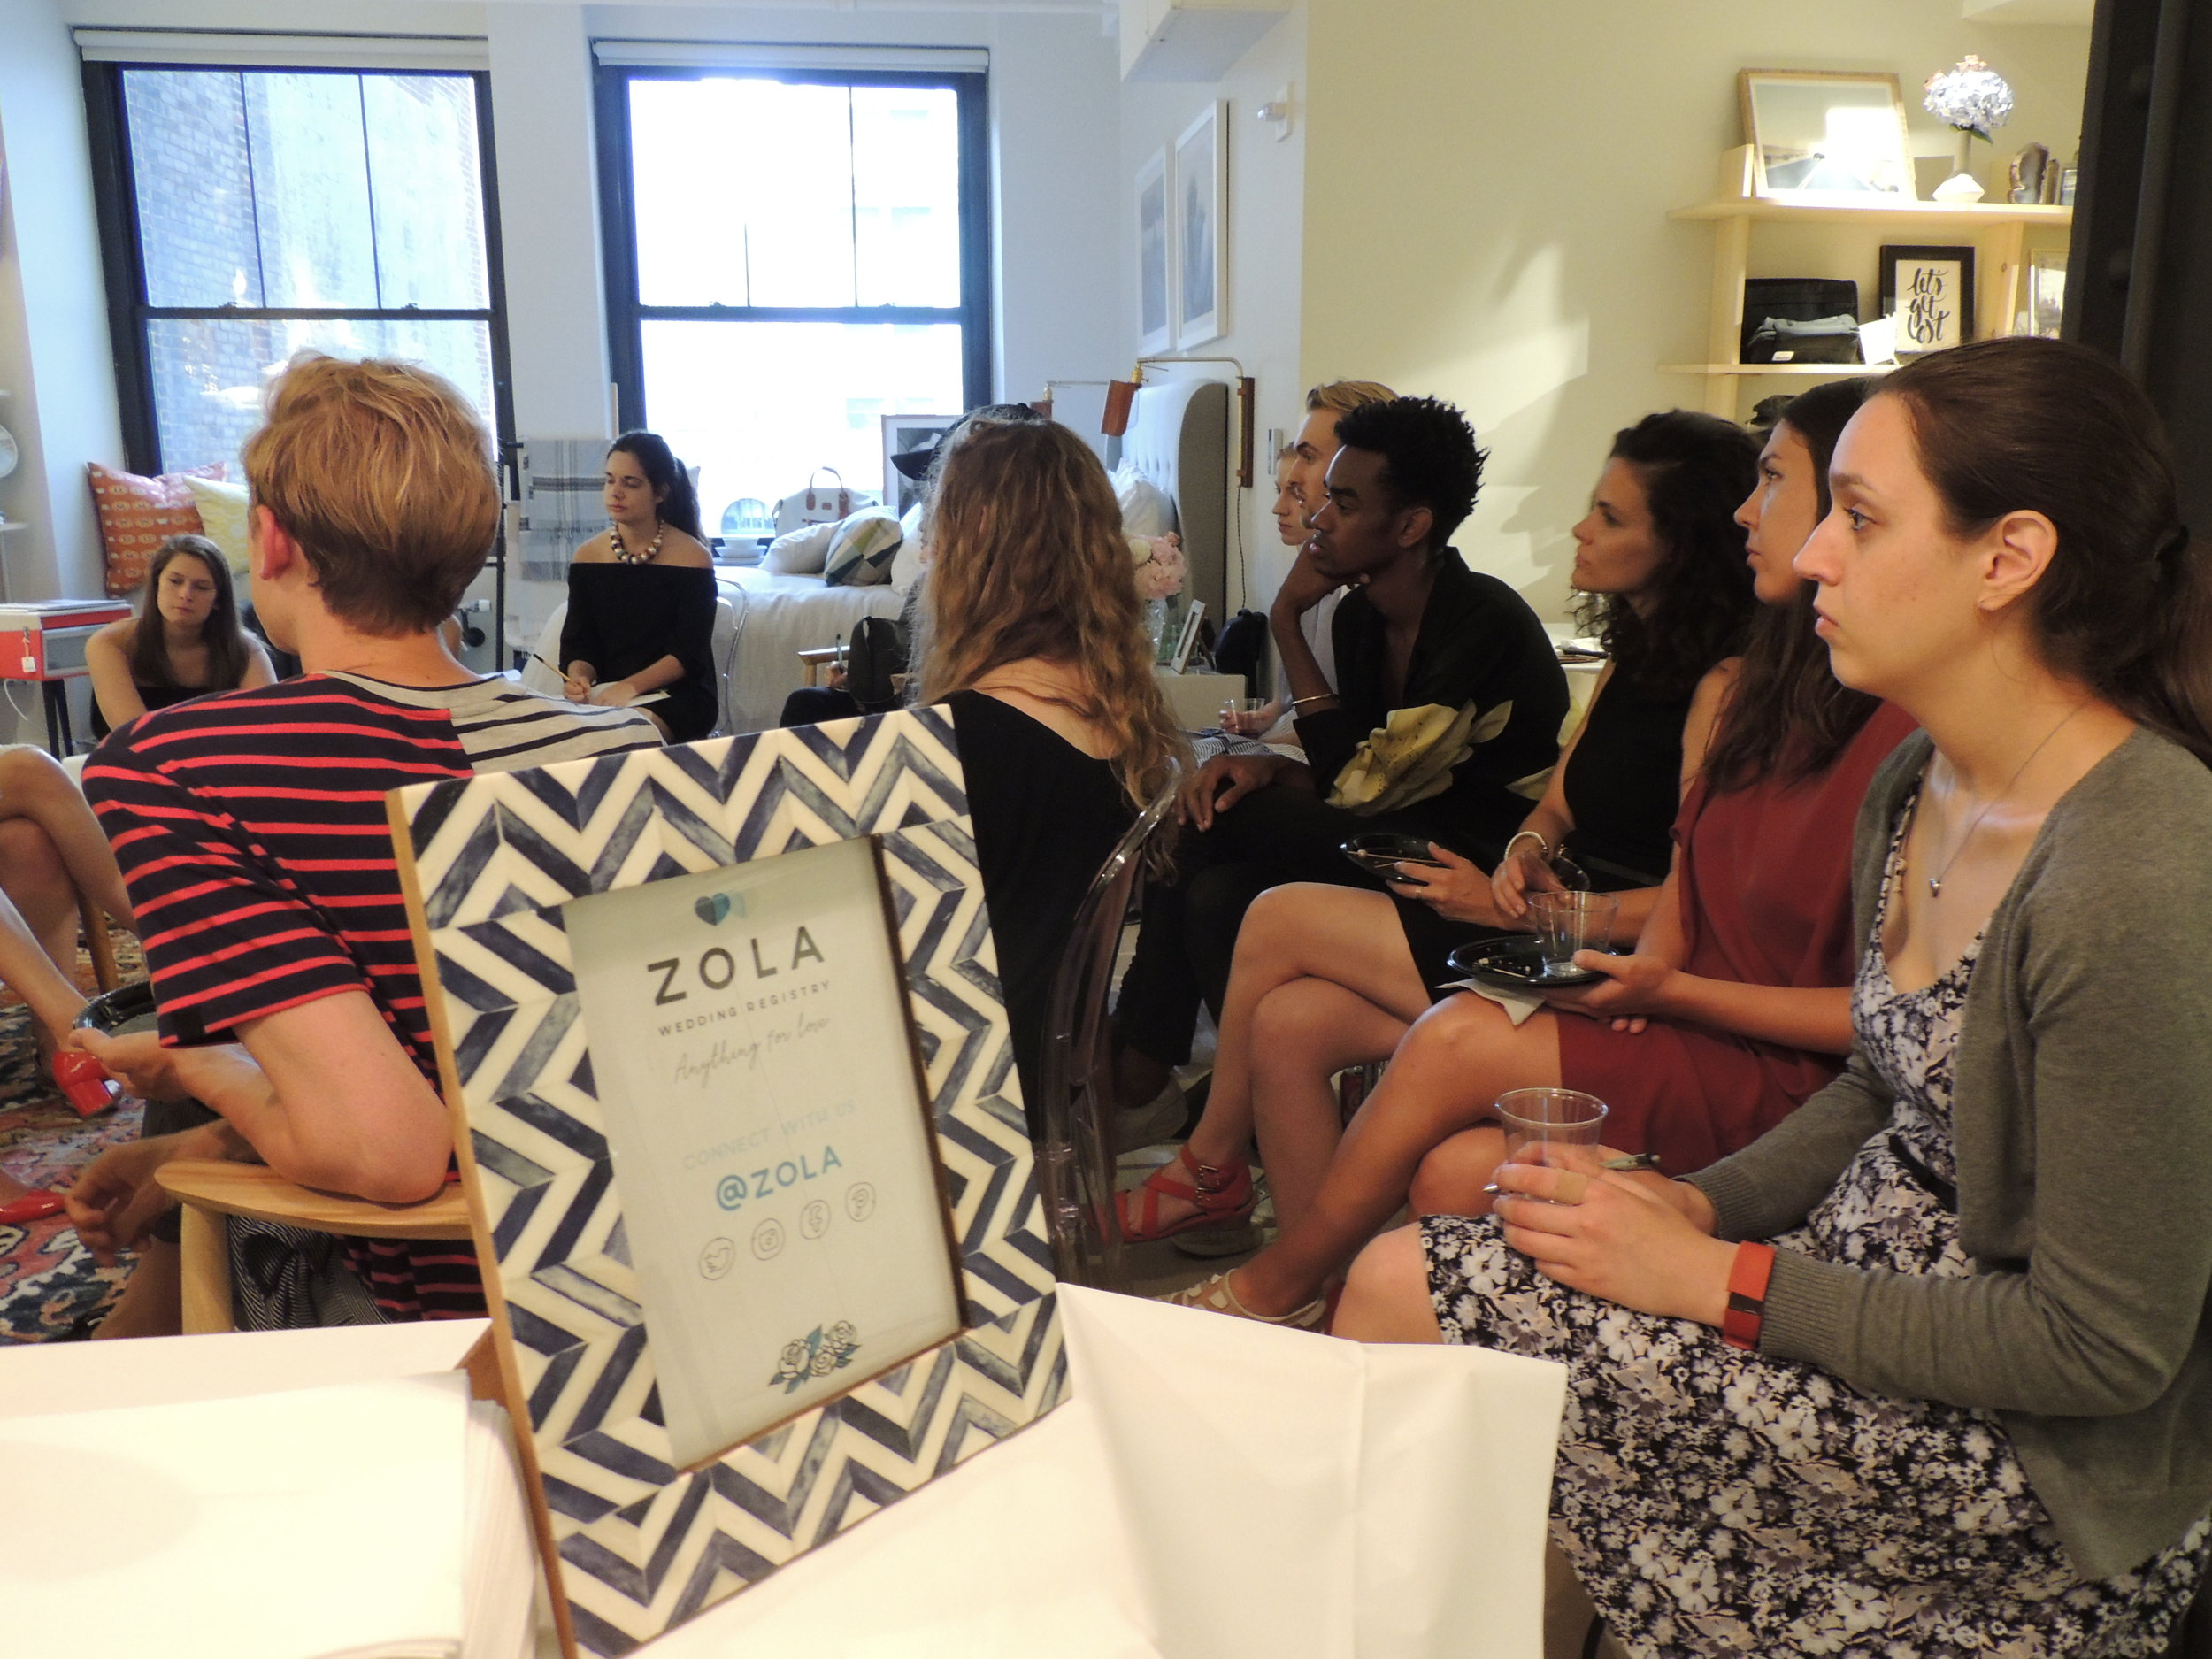 """Can you tell us about the background of the company and how it got started?"" Marlena inquired.  Rachel went on to share some information about Zola's CEO and what inspired her to create this business. ""Our CEO, Shan-Lyn Ma, founded our company. Approximately four years ago, she was invited to ten weddings in one year. She had to buy gifts for all of these friends of hers off their wedding registry. She went to purchase these gifts and found that this was the worst e-commerce experience she had ever had,"" Rachel said. ""Shan had worked at Gilt and had built the iPhone app for that company. From her experience there, she was a visionary product leader. Reflecting on the wedding registry experience she had, she realized that not only did she not like it, but her friends didn't enjoy the process either. She decided to recreate the wedding registry process using technology to make registry a completely different and much better experience. She started out with her new business idea and got immediate traction with new couples who found this to be a more modern way to register.  ""On our platform, you can register for cash, experiences, and product – all in once place. Traditionally, you would have to go to a different place for each of these things. On Zola.com, you can also choose when your gifts ship to you. Instead of coming back from your honeymoon to a hundred packages you weren't ready for, Zola allows you to control when those gifts get to you. You can even return a gift before it gets to you. If your grandma buys you a gift you don't love, before the item comes to you, you'll receive an email asking you whether you'd like to keep or exchange the gift. If you want to exchange it, you can do it for a credit on our site. We are solving real customer pain points, and continue to do so."""